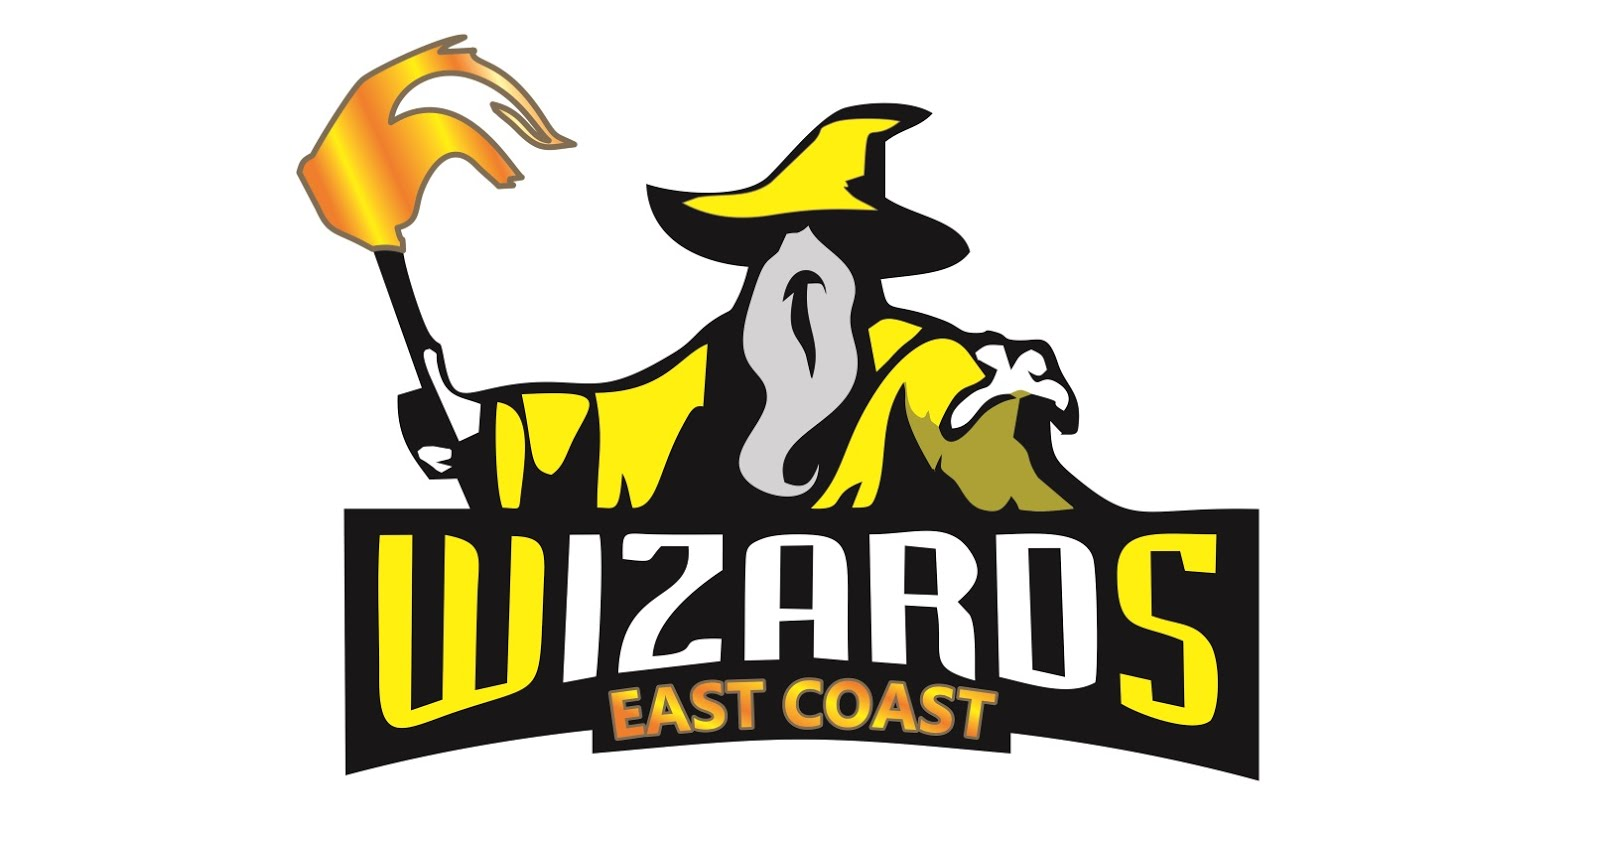 East Coast Wizards - Hollywoodbets Dolphins Premier League - Cricket